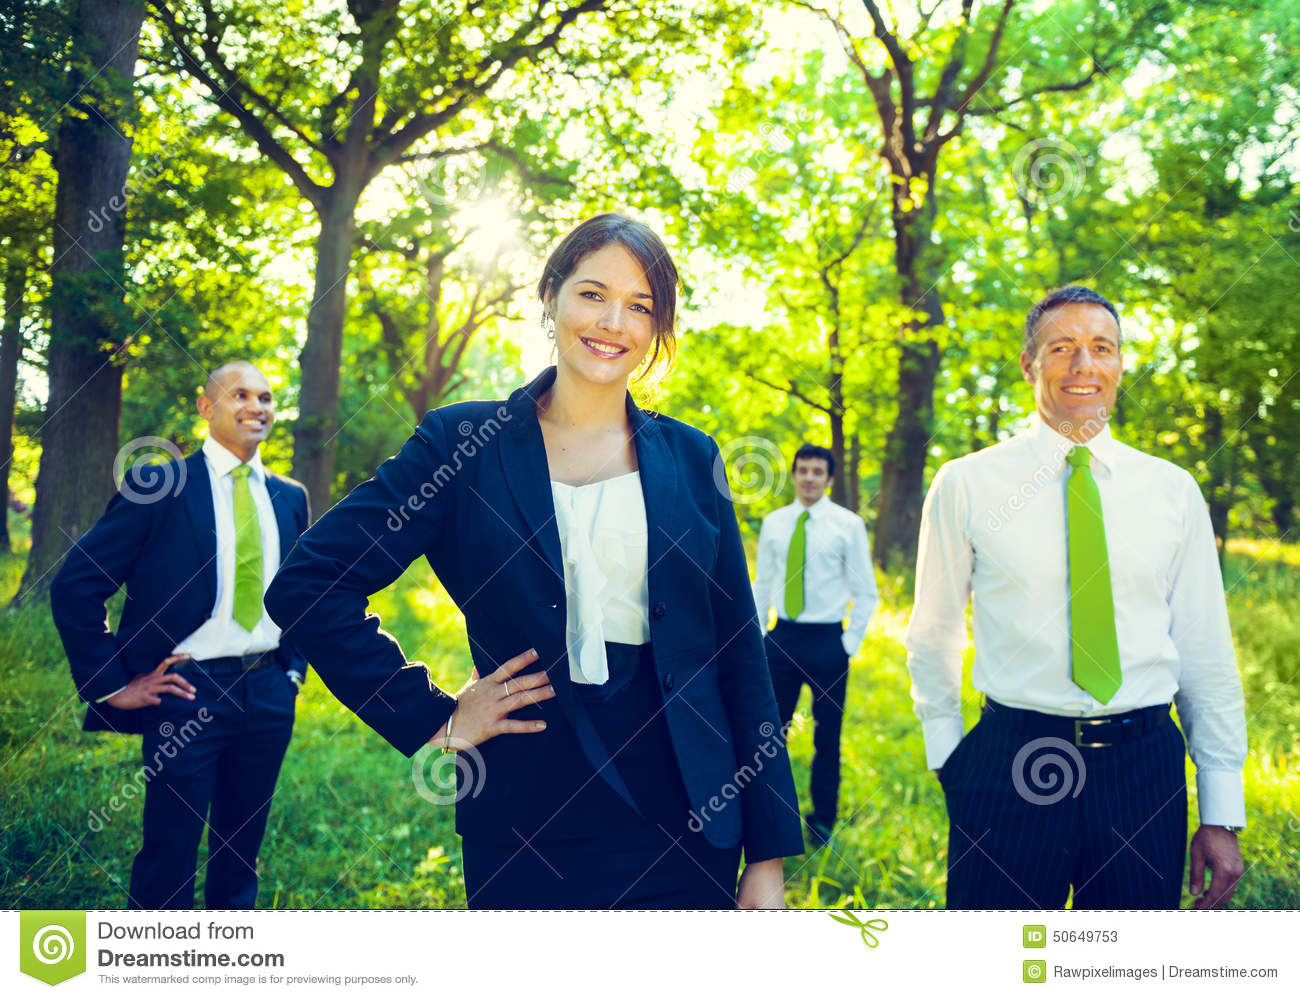 green business team environment forest concept stock photo image green business team environment forest concept